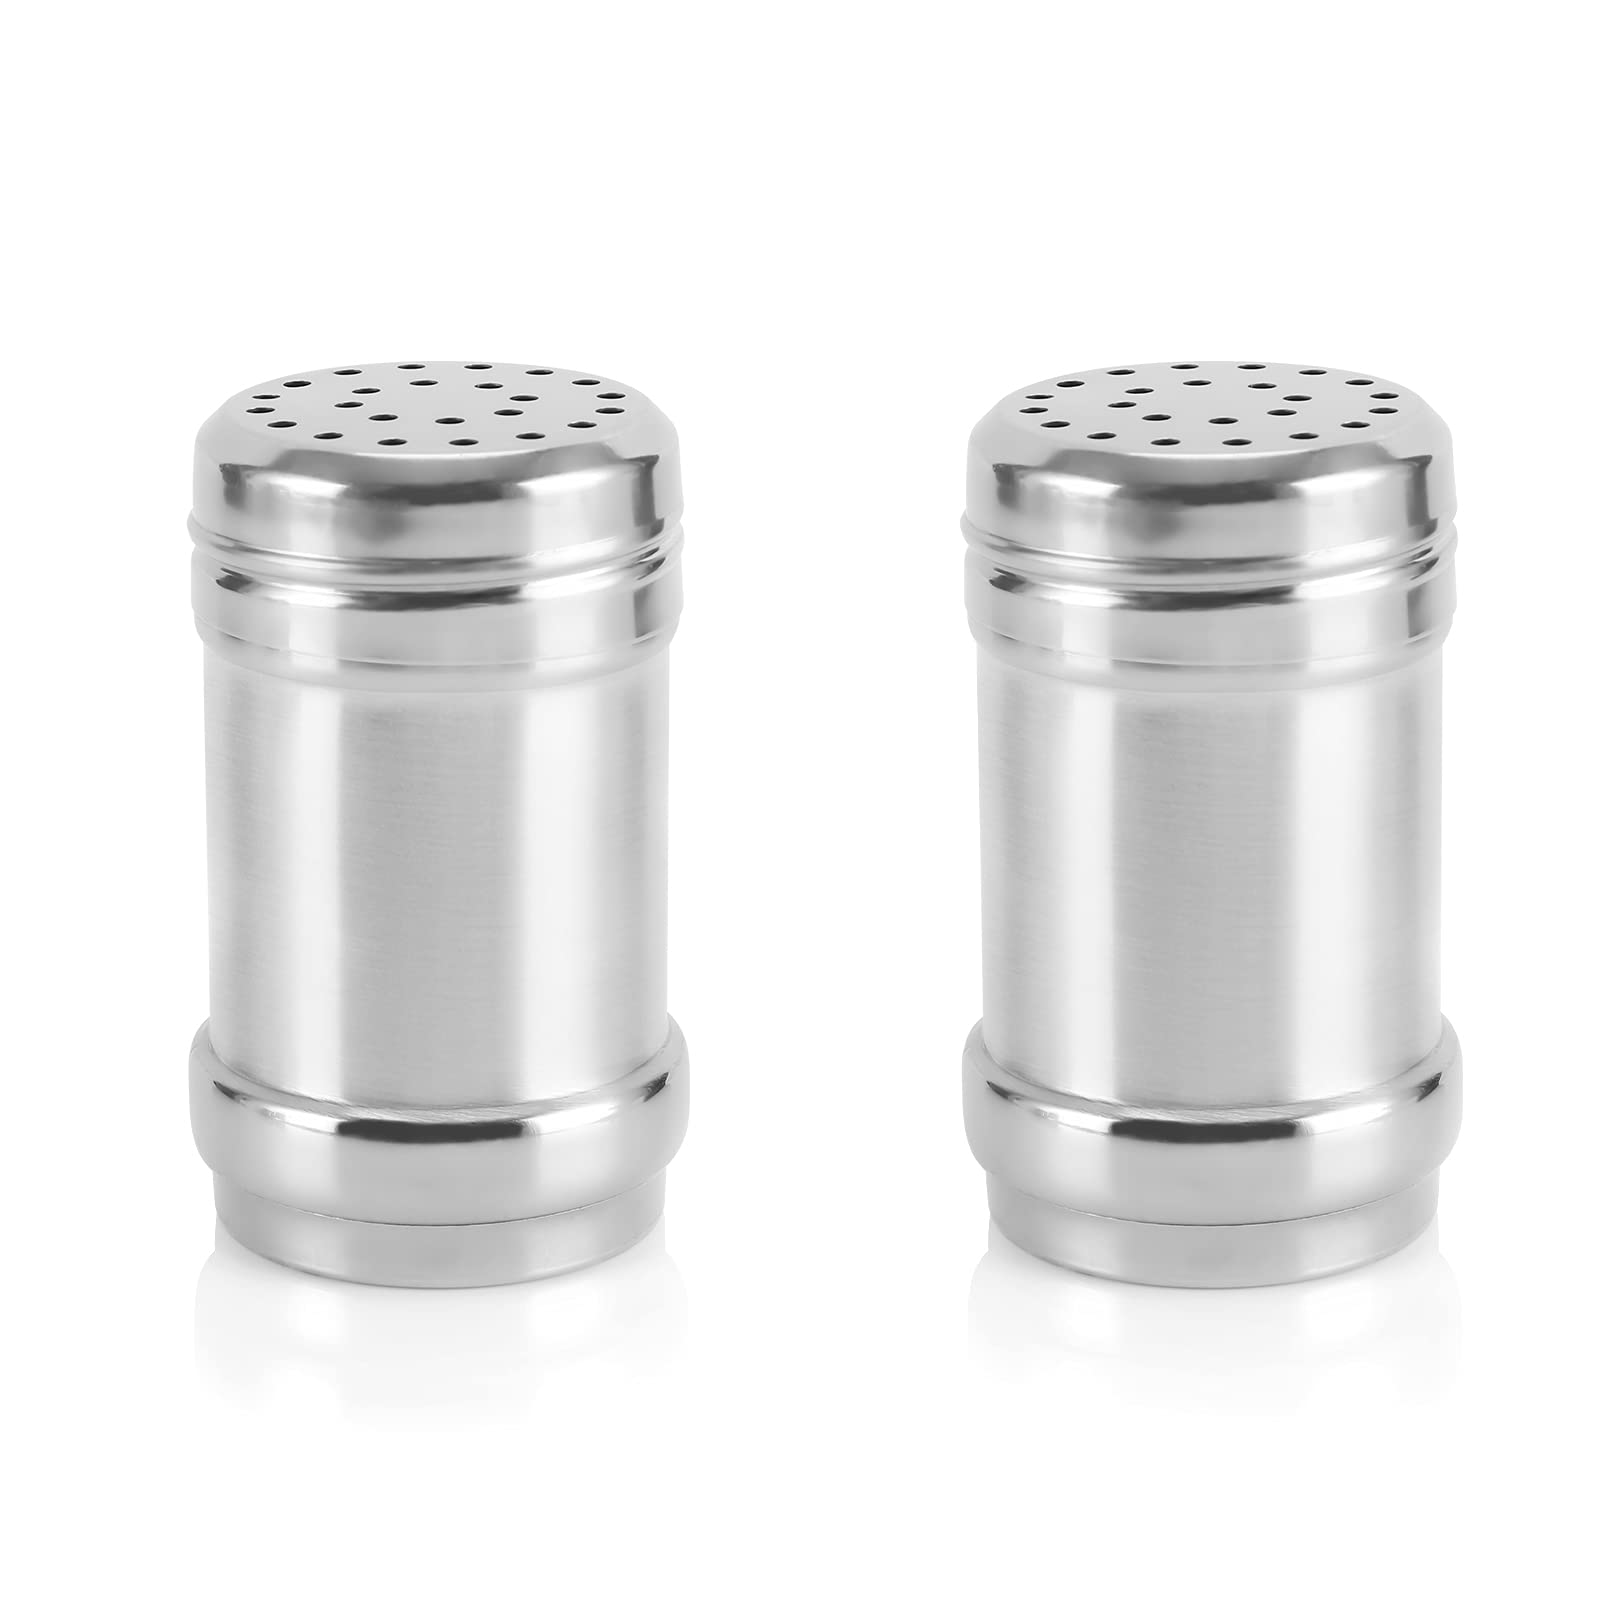 Accmor 2pcs Stainless Steel Salt and Pepper Shaker, Seasoning Containers, Stainless Steel Dredge Salt/Sugar/Spice/Pepper Shaker